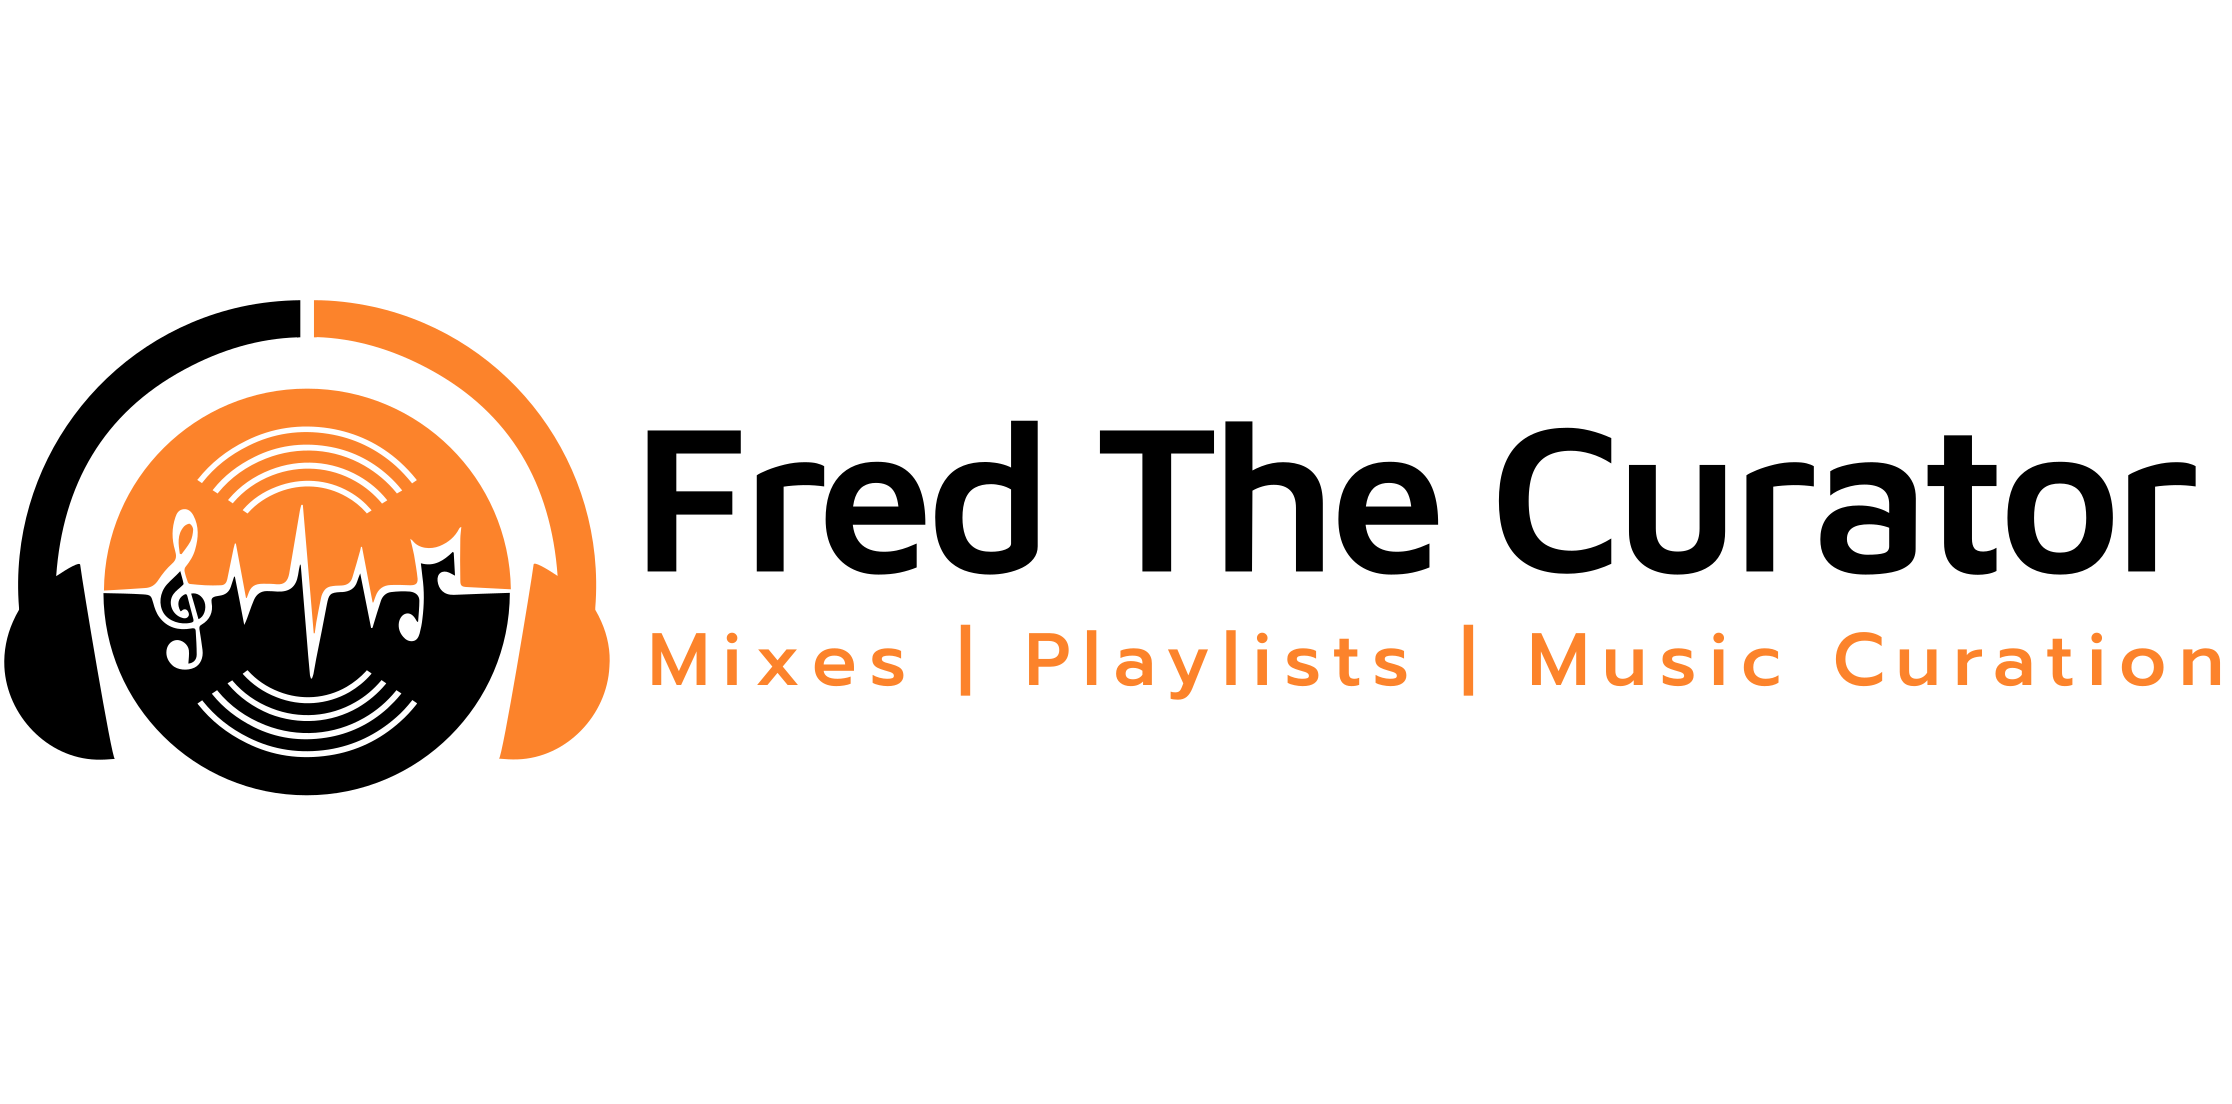 Fred The Curator